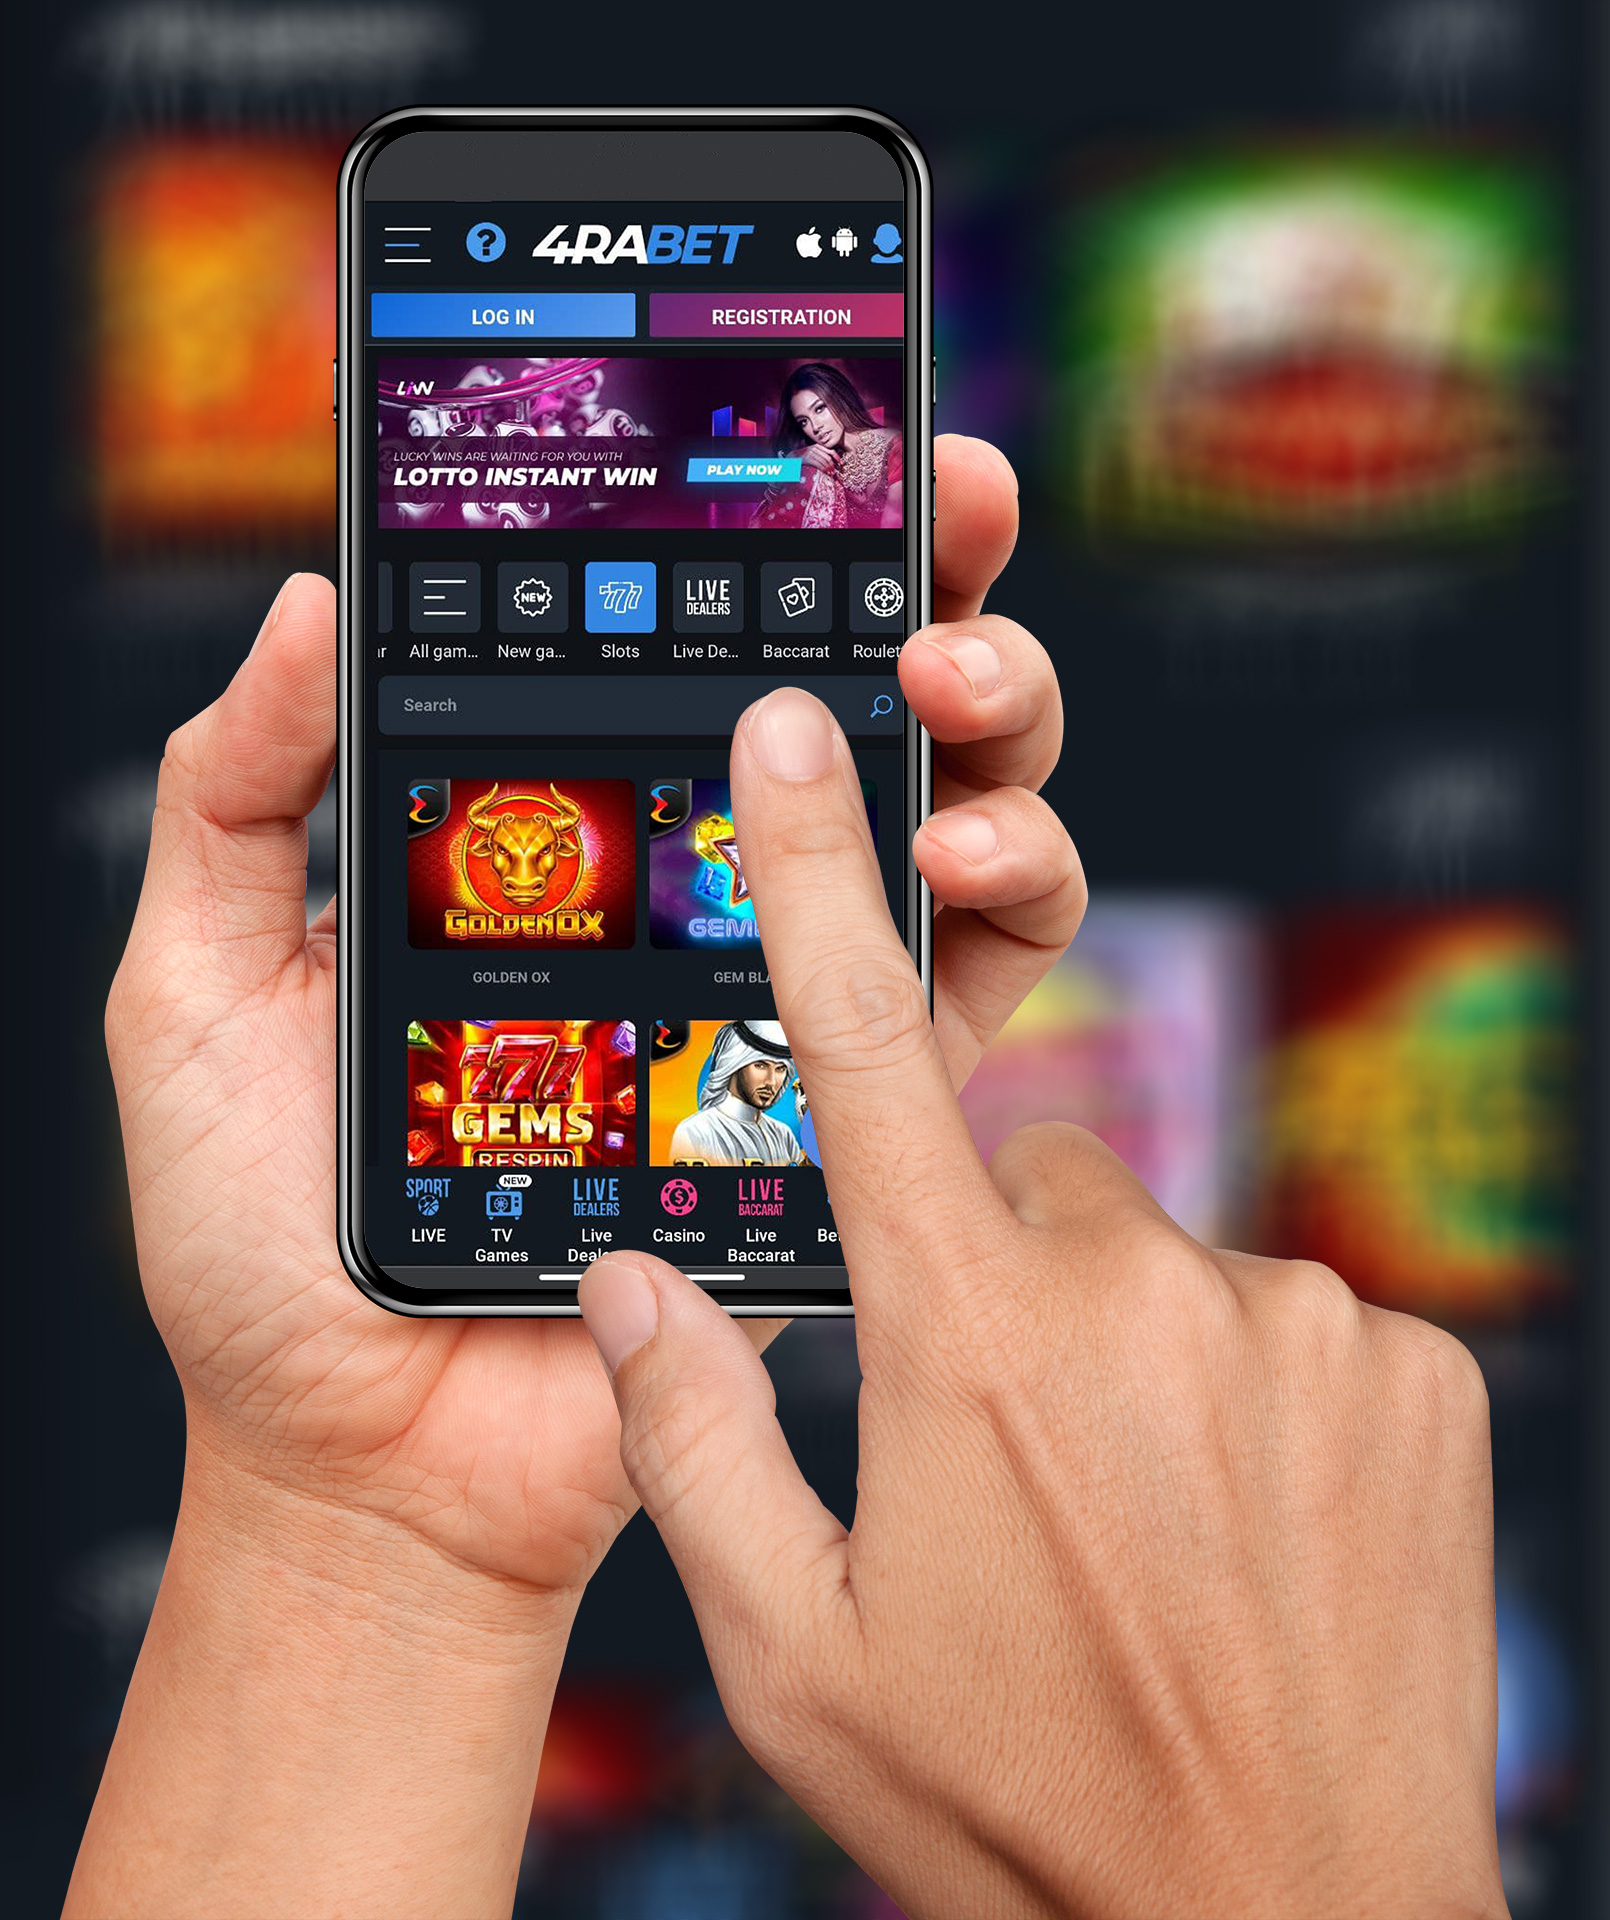 You can also play casino games via the 4rabet mobile app.